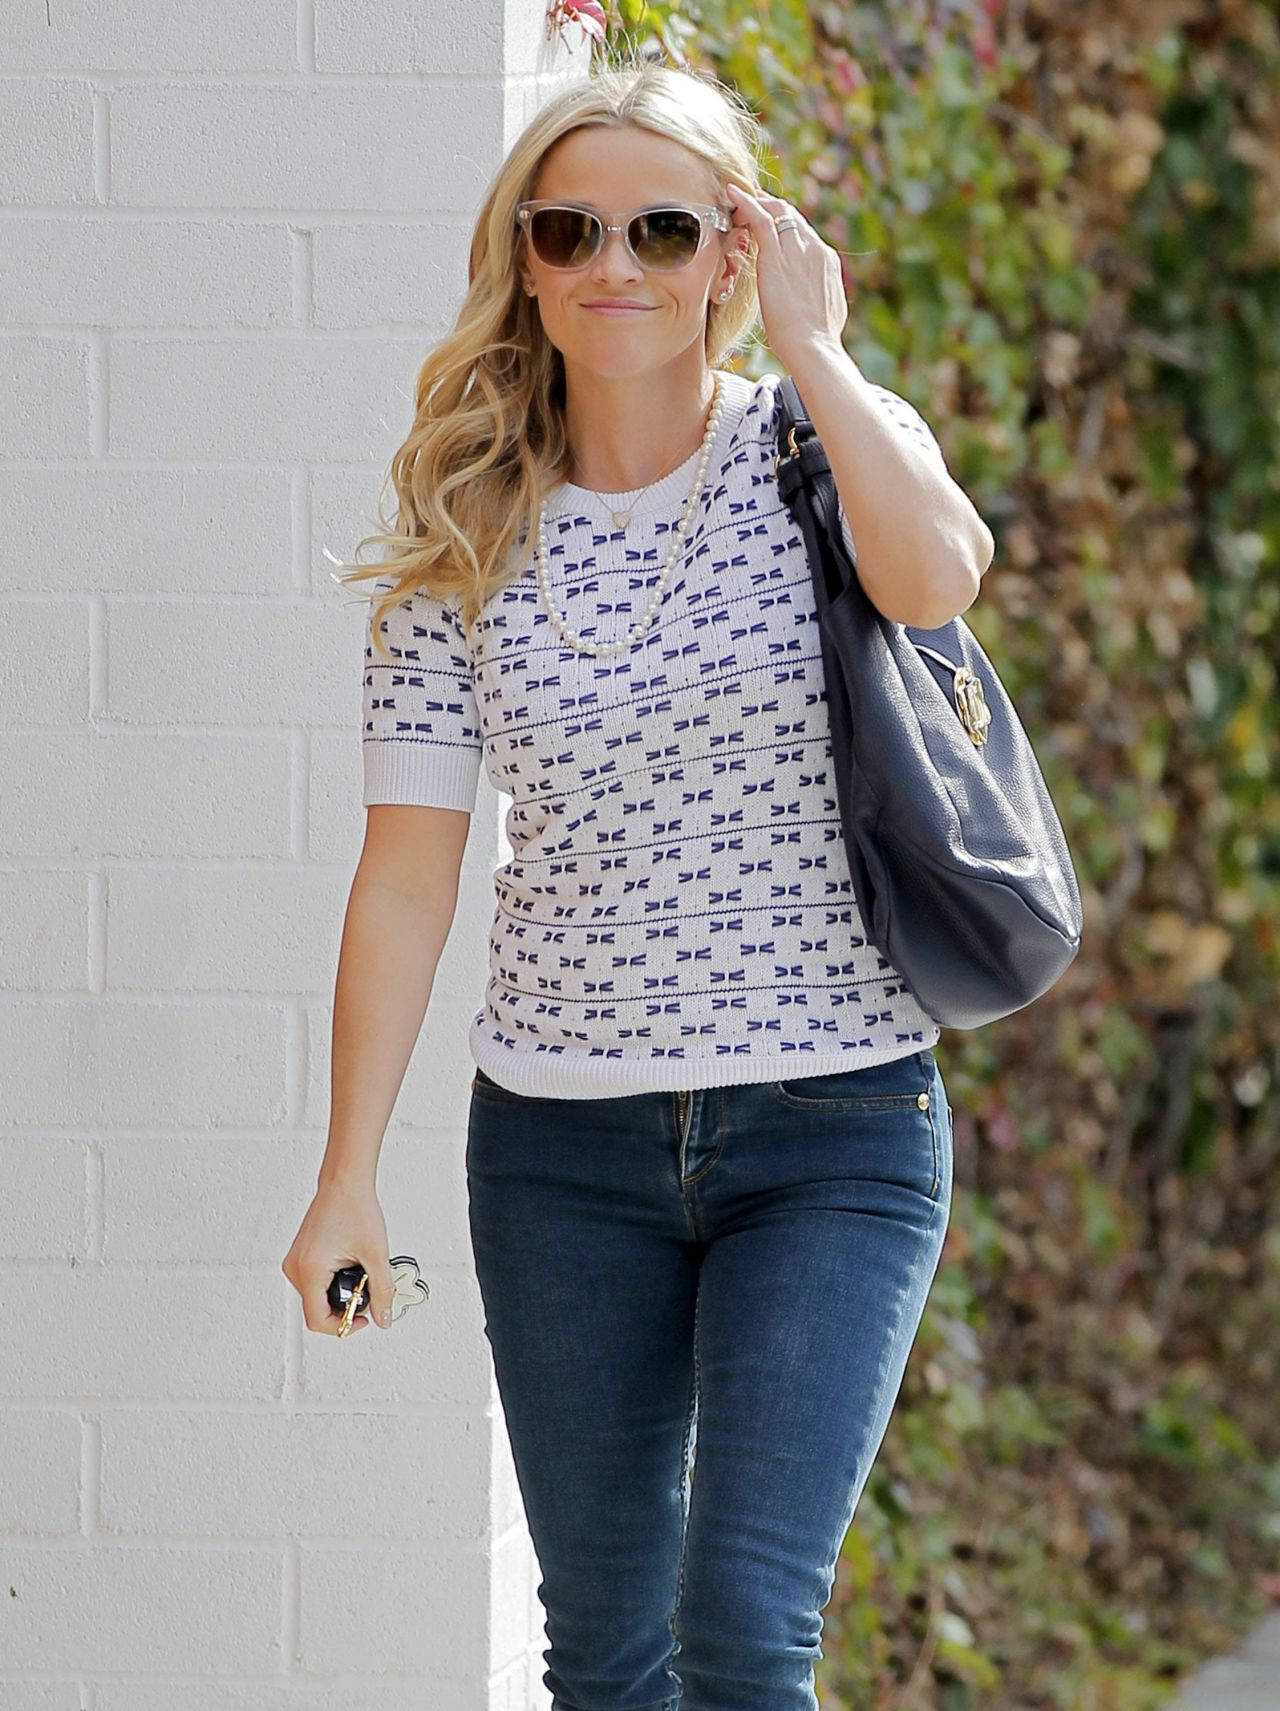 Reese Witherspoon Out In Los Angeles January 2016